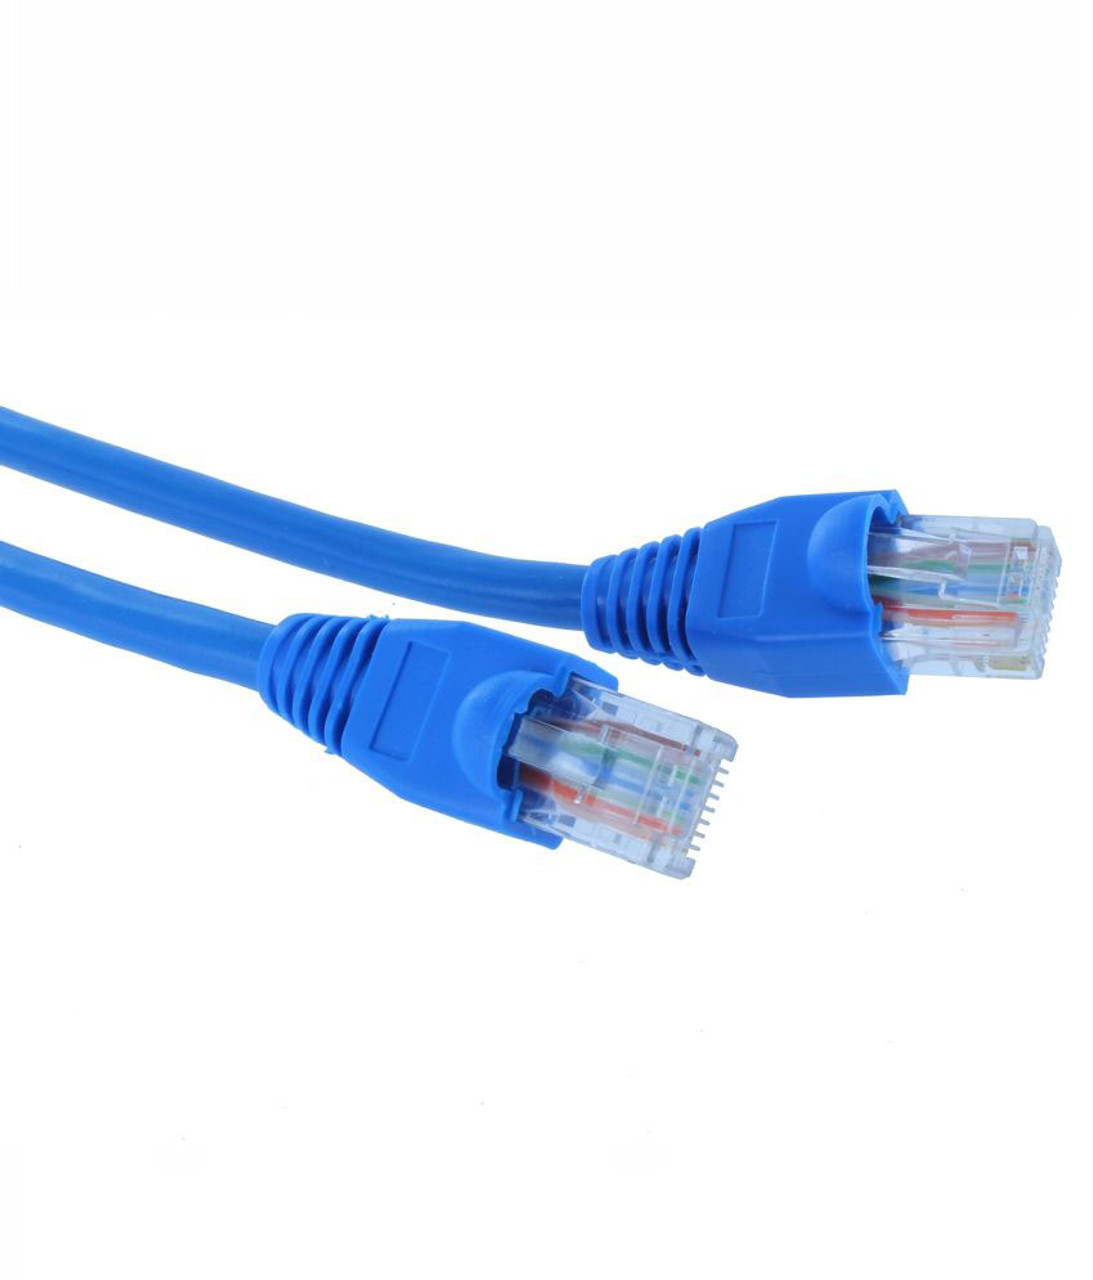 Product image for 2M Blue FTP Shielded CAT6 Cable | CX Computer Superstore